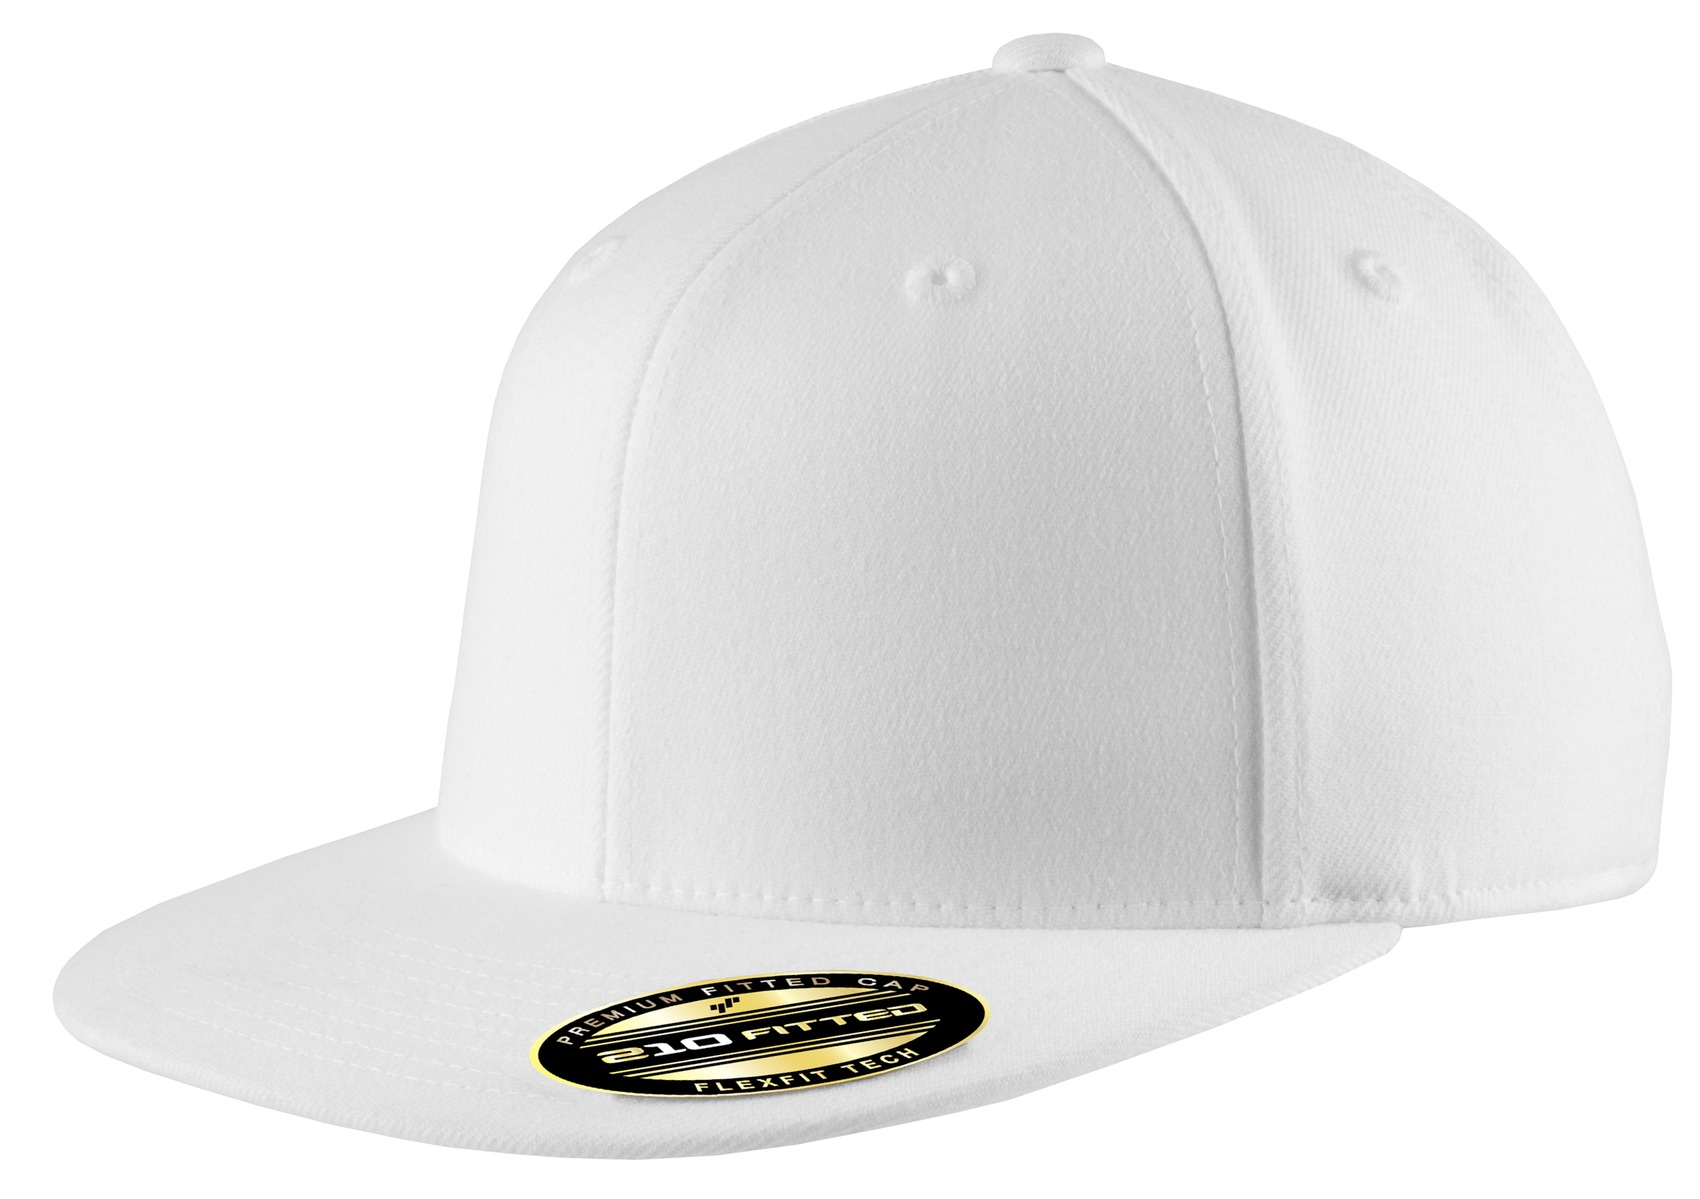 Port Authority ®  Flexfit 210 ®  Flat Bill Cap. C808 - White